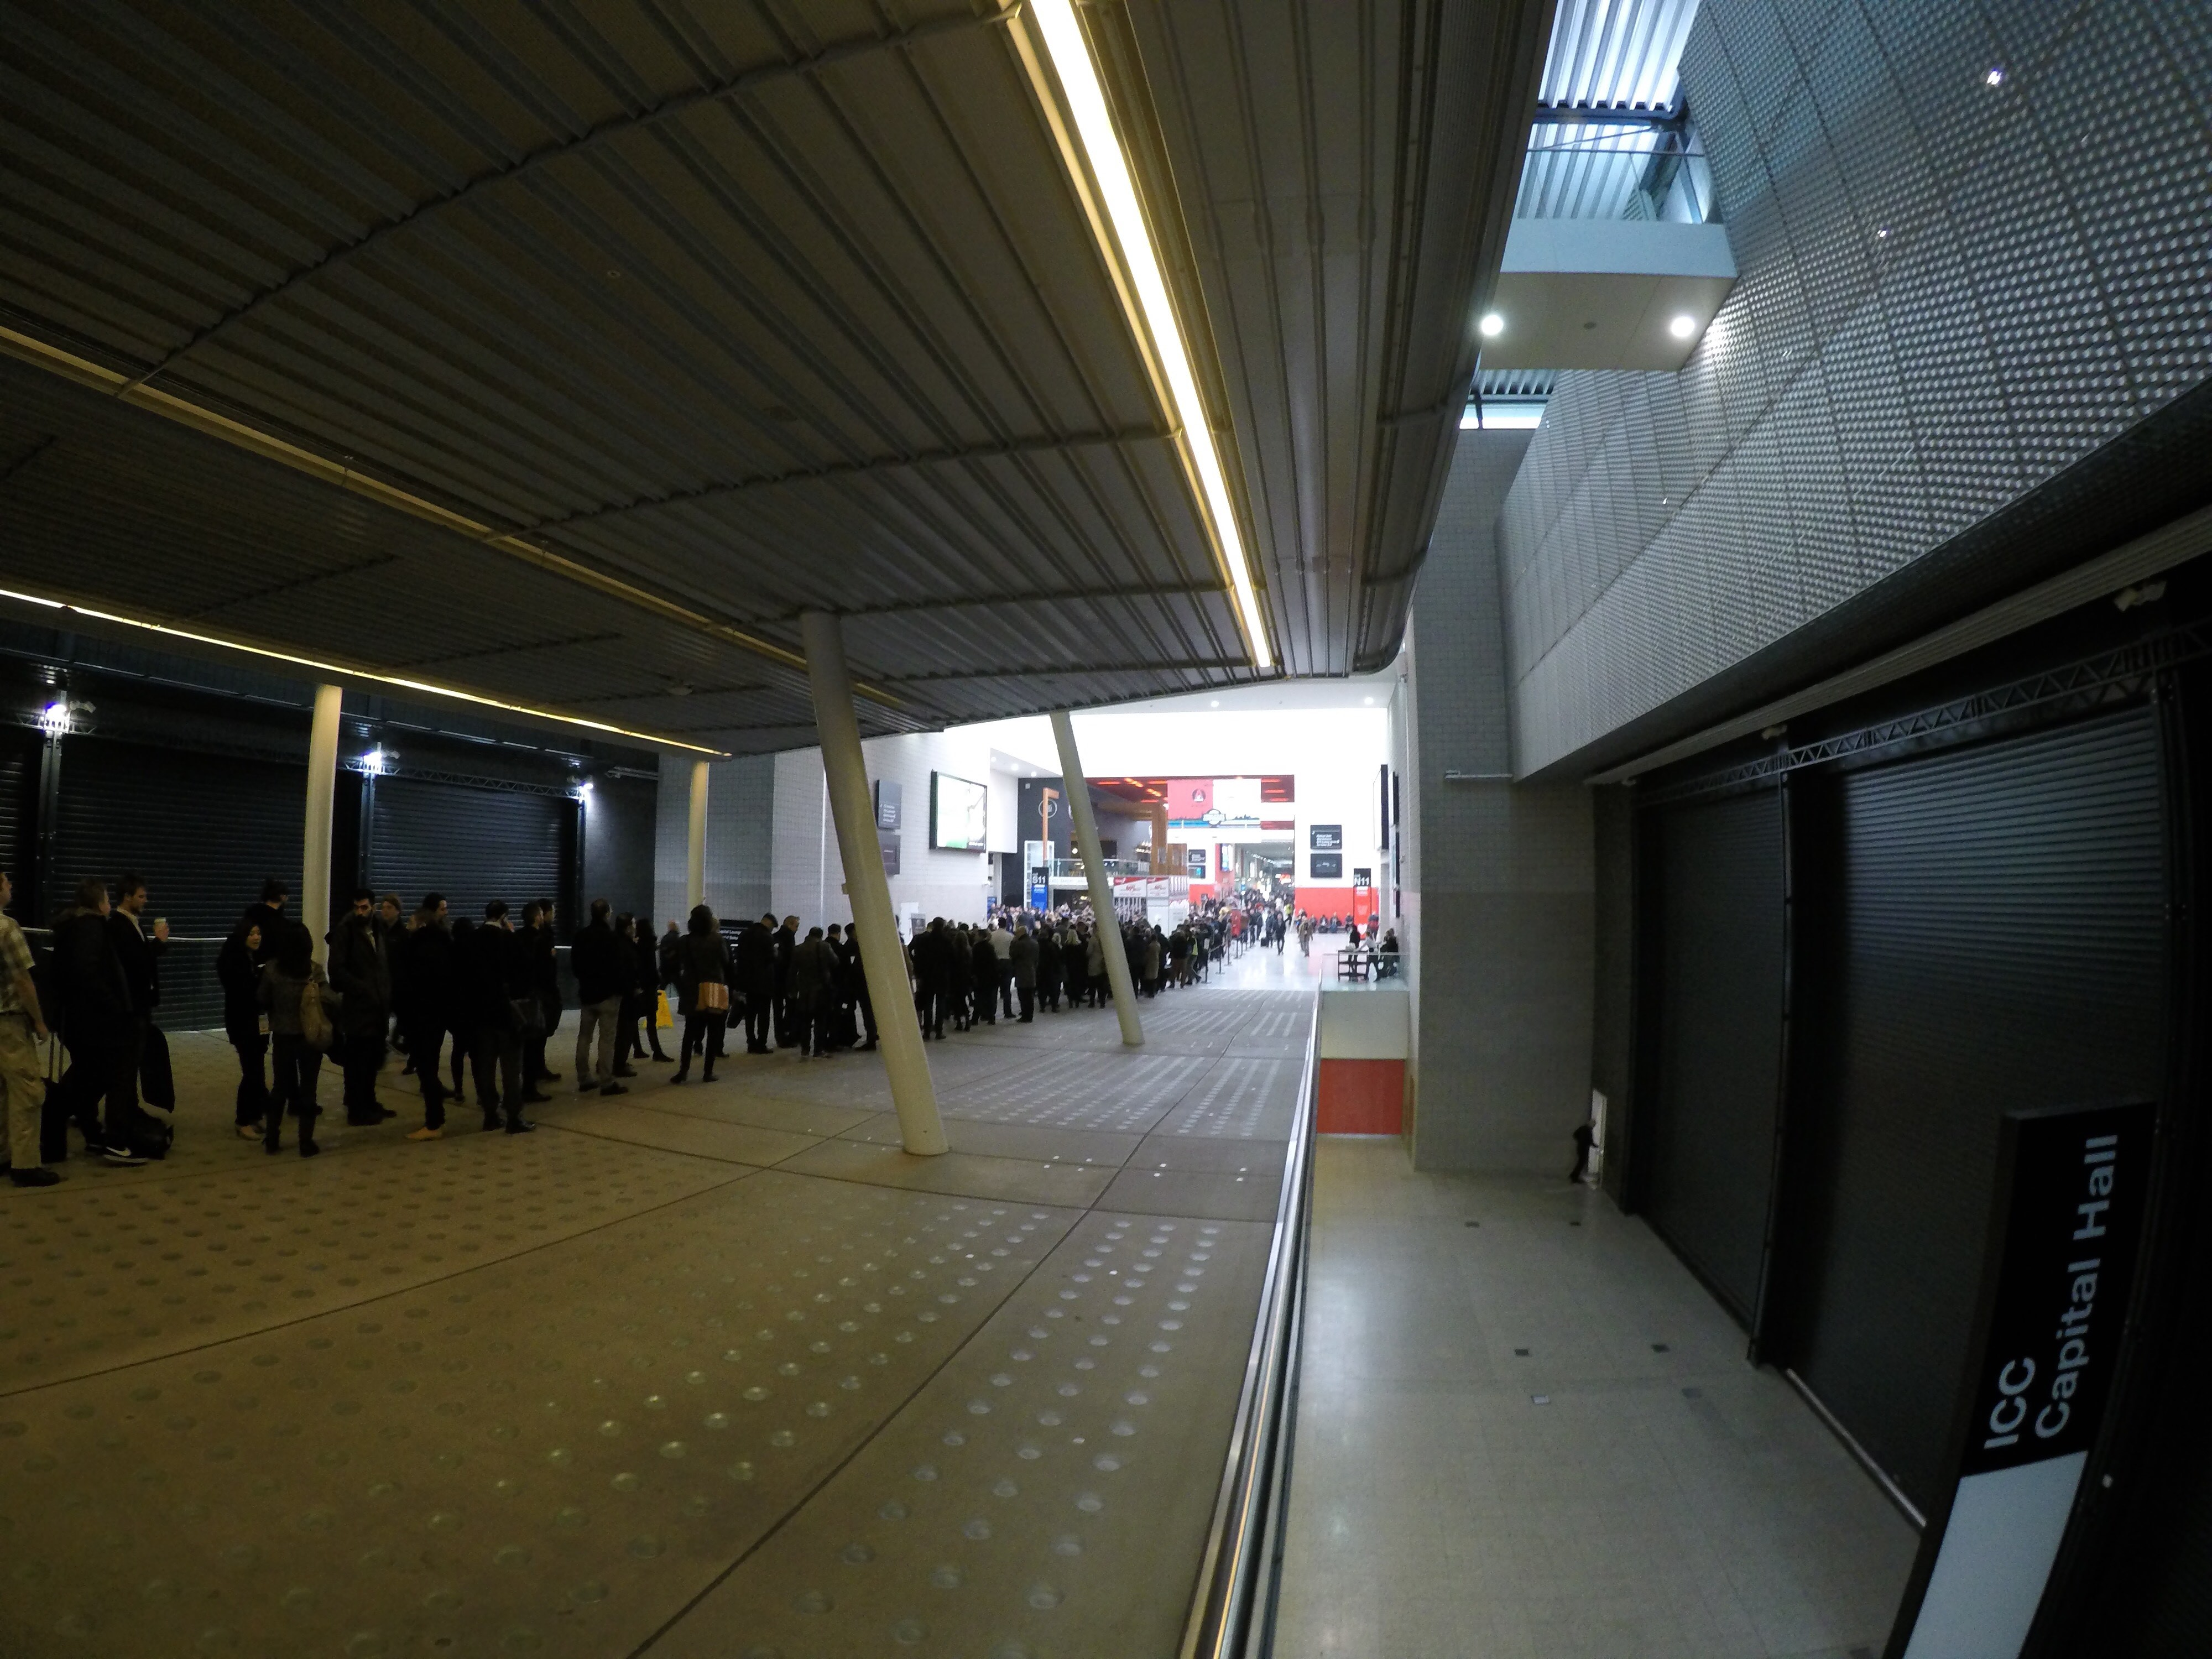 London Affiliate Conference February 2017 - Waiting Line - part 6